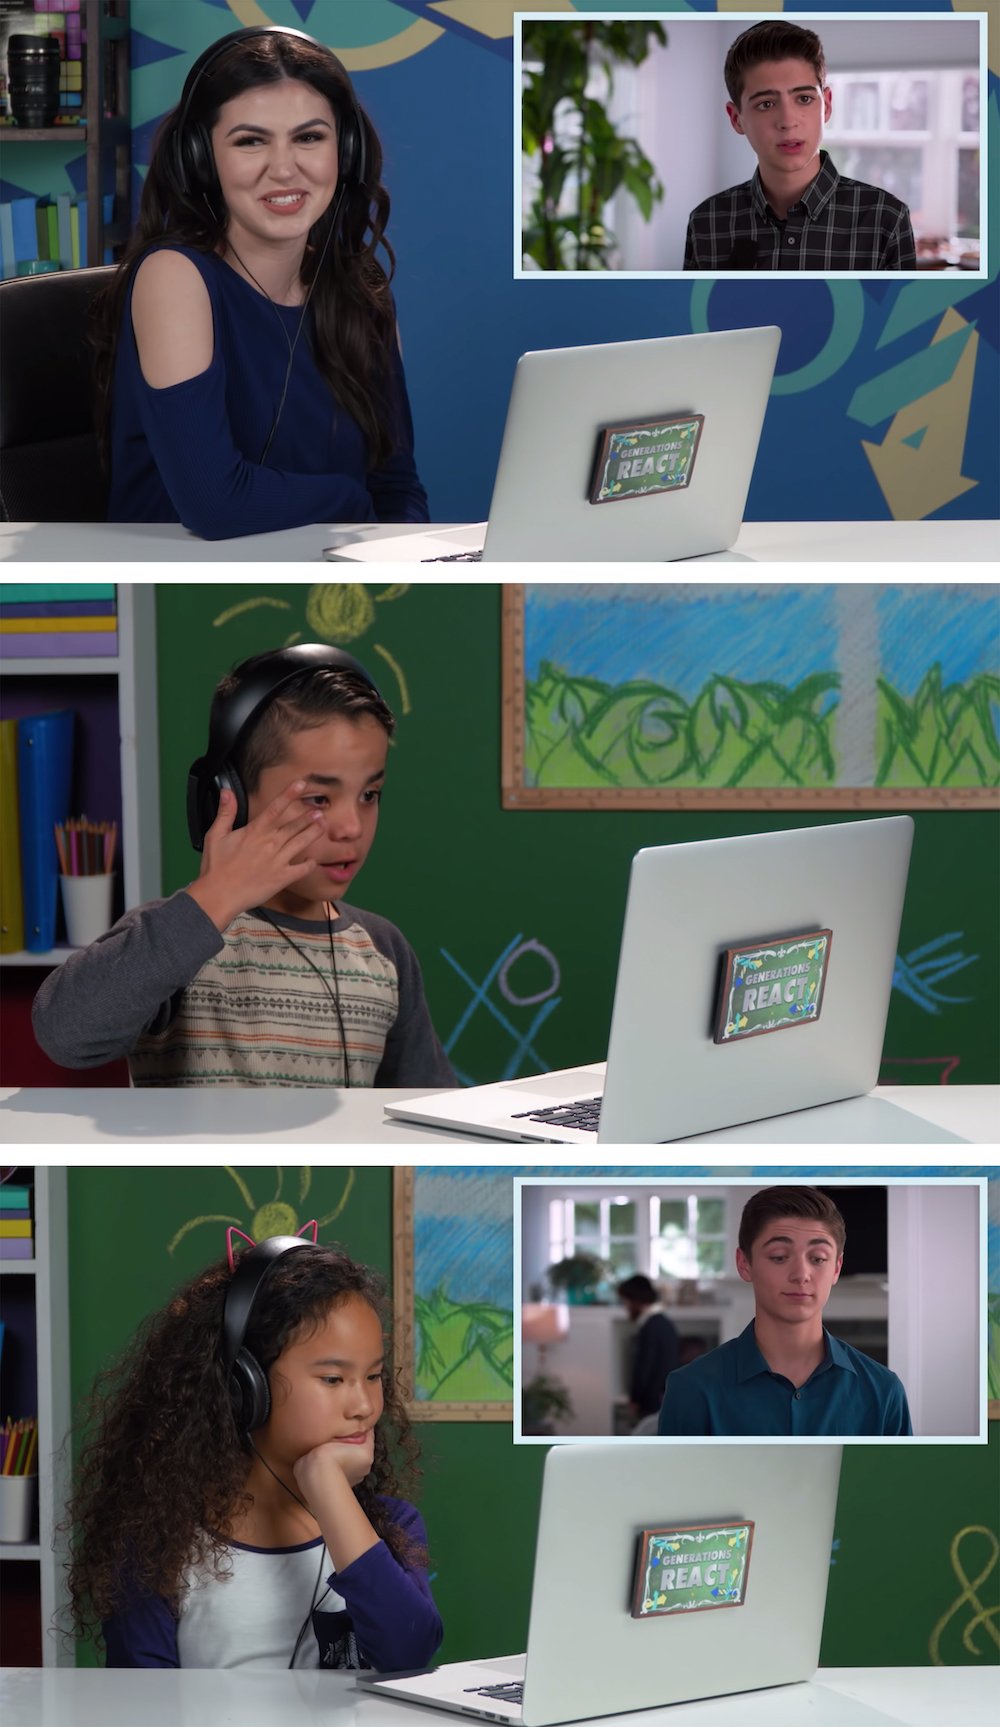 Kids and teens react to Andi Mak